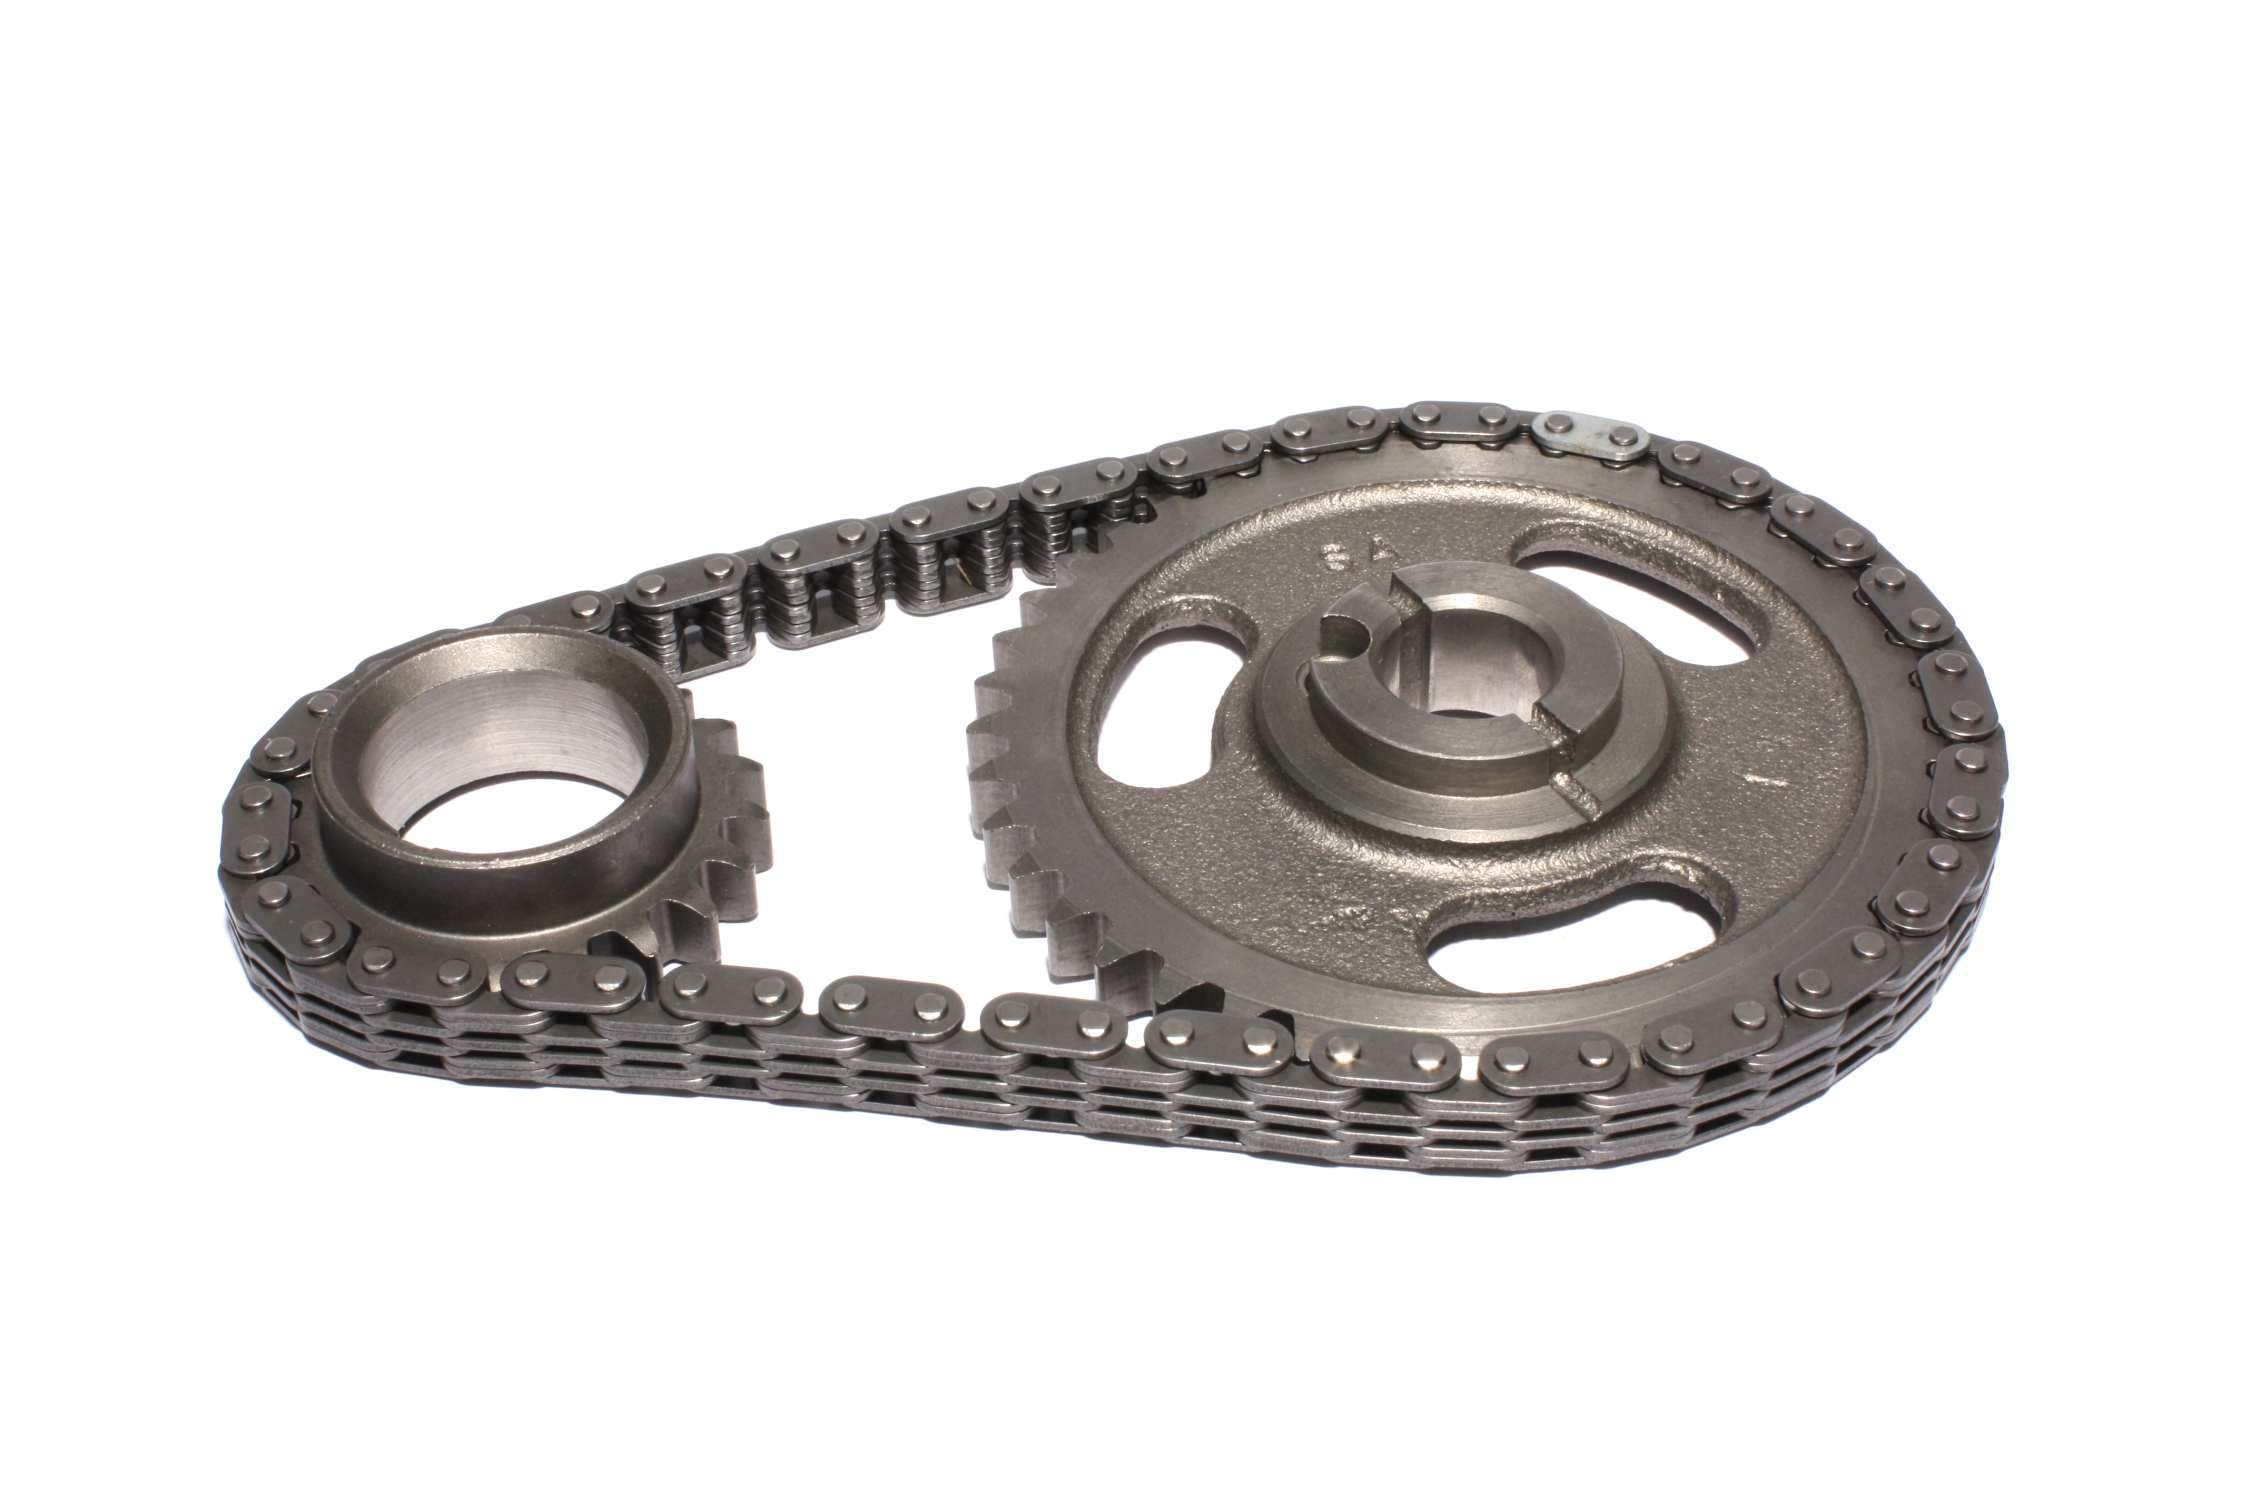 Competition Cams 3220 High Energy Timing Chain Set for 289, 302 Ford, Pre-1972 by Comp Cams